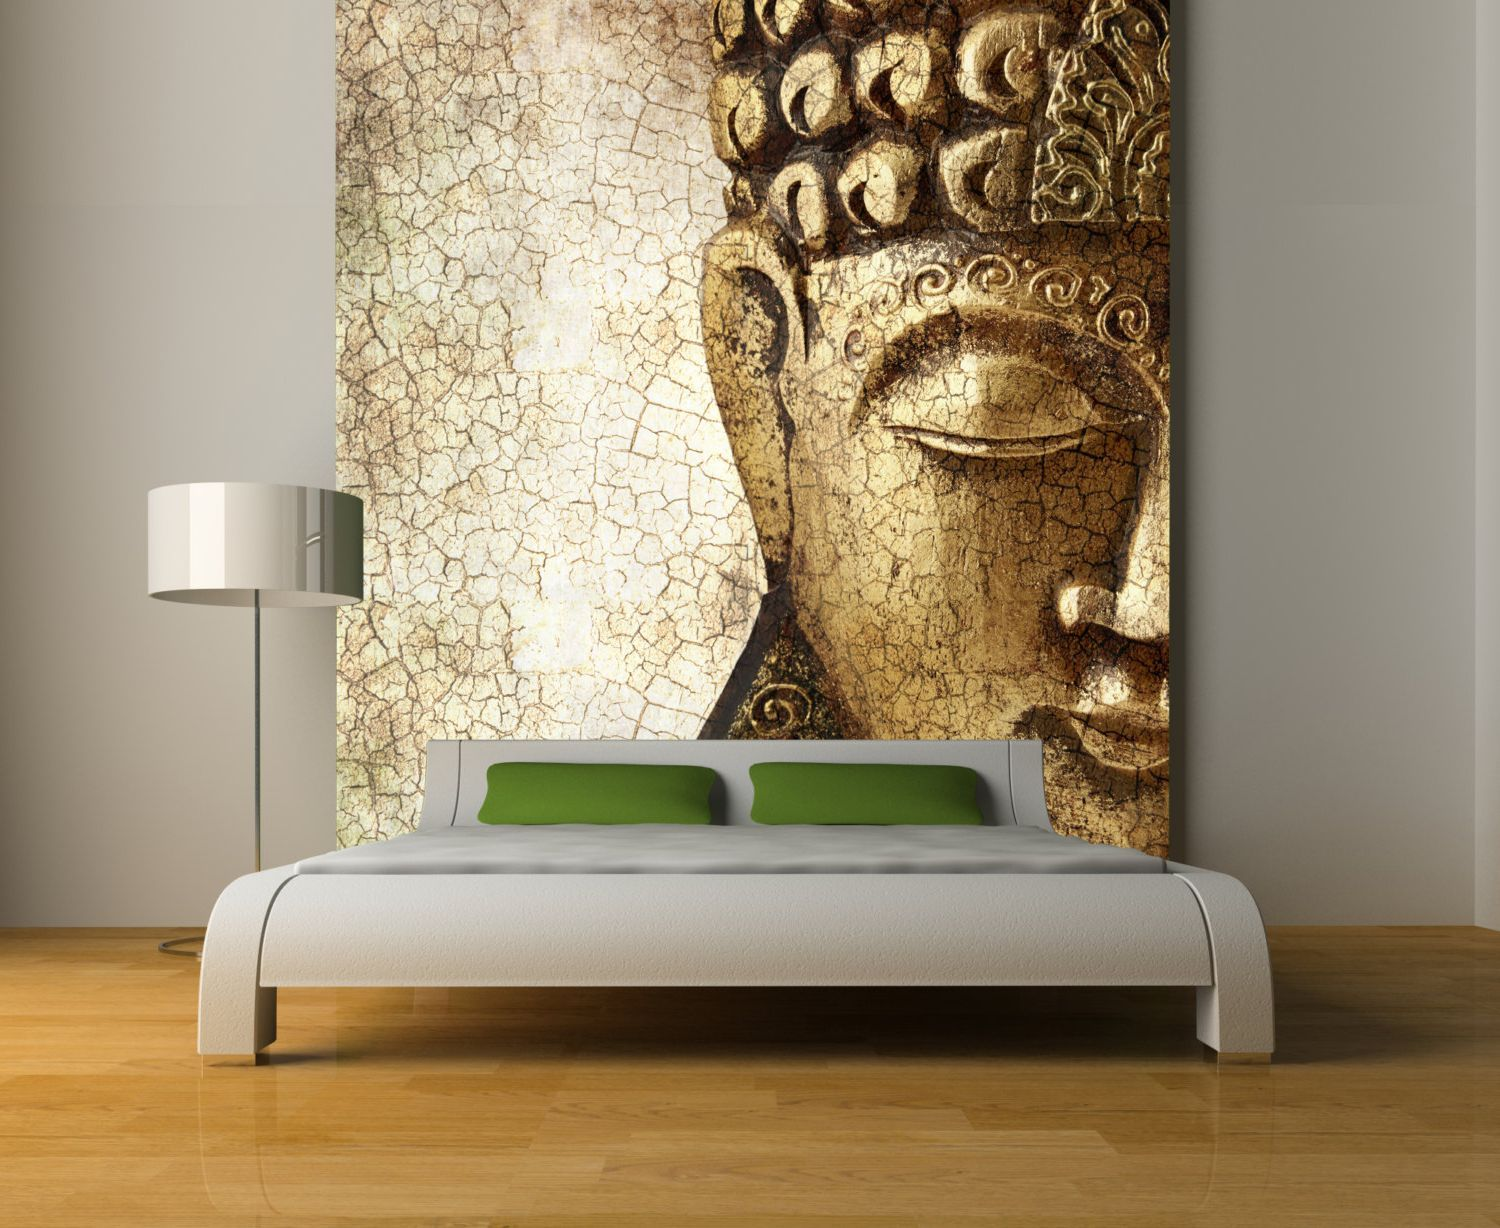 Fabulous Over Sized Buddha Wall Mural In Gold Accent : 12 Inspiring Images of Buddhist Home with Beautiful Buddha Decor Shown as Statues and Wall Painting #buddhadecor